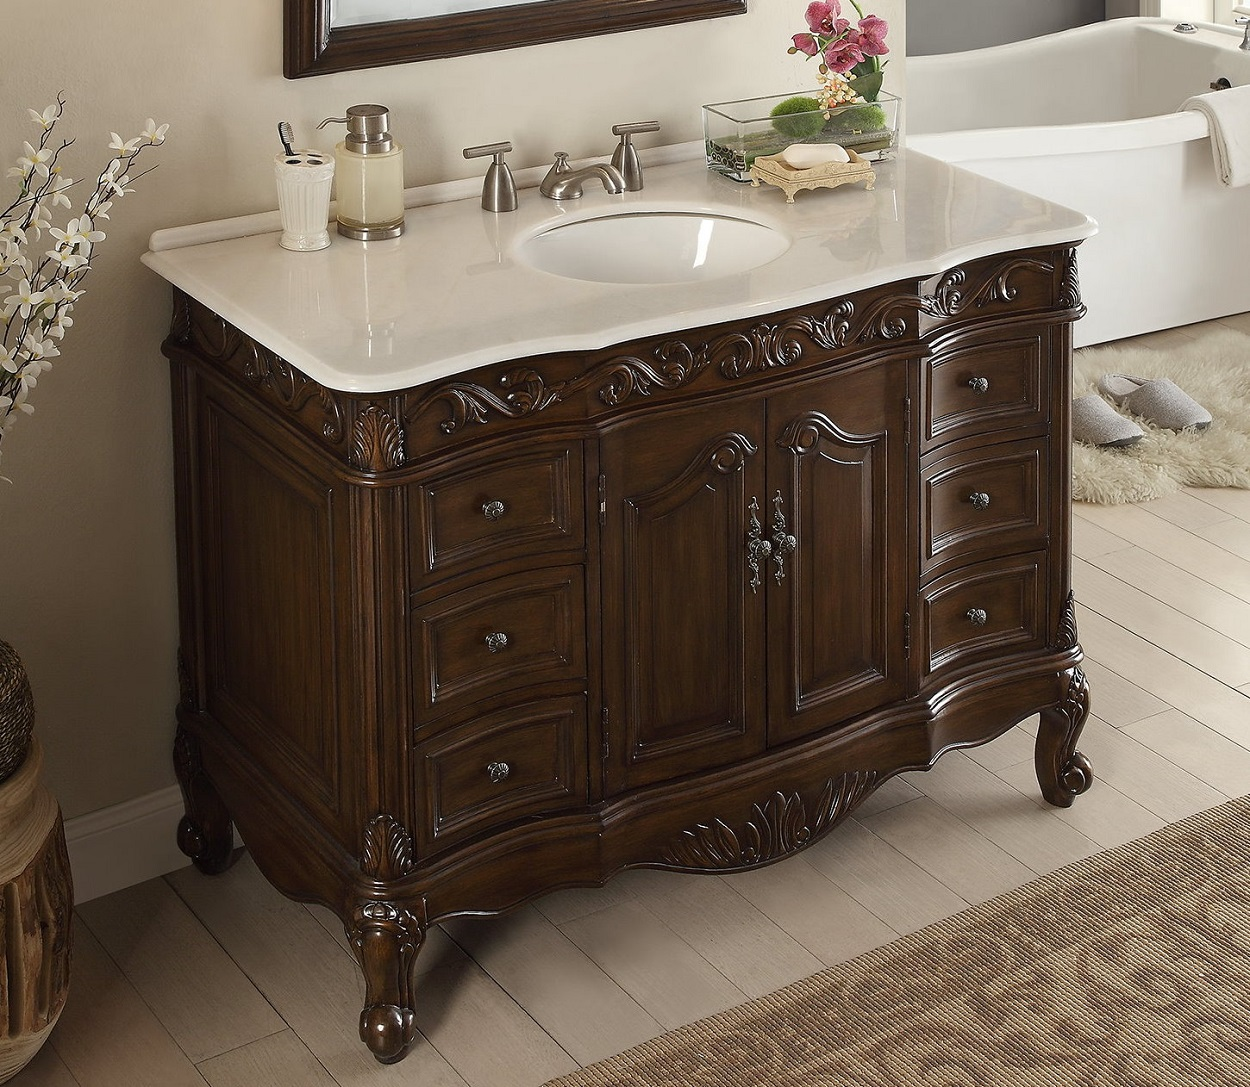 48 inch bathroom vanity traditional style dark brown color 48 wx22 dx35h csw3882wtk48 for Traditional style bathroom vanities